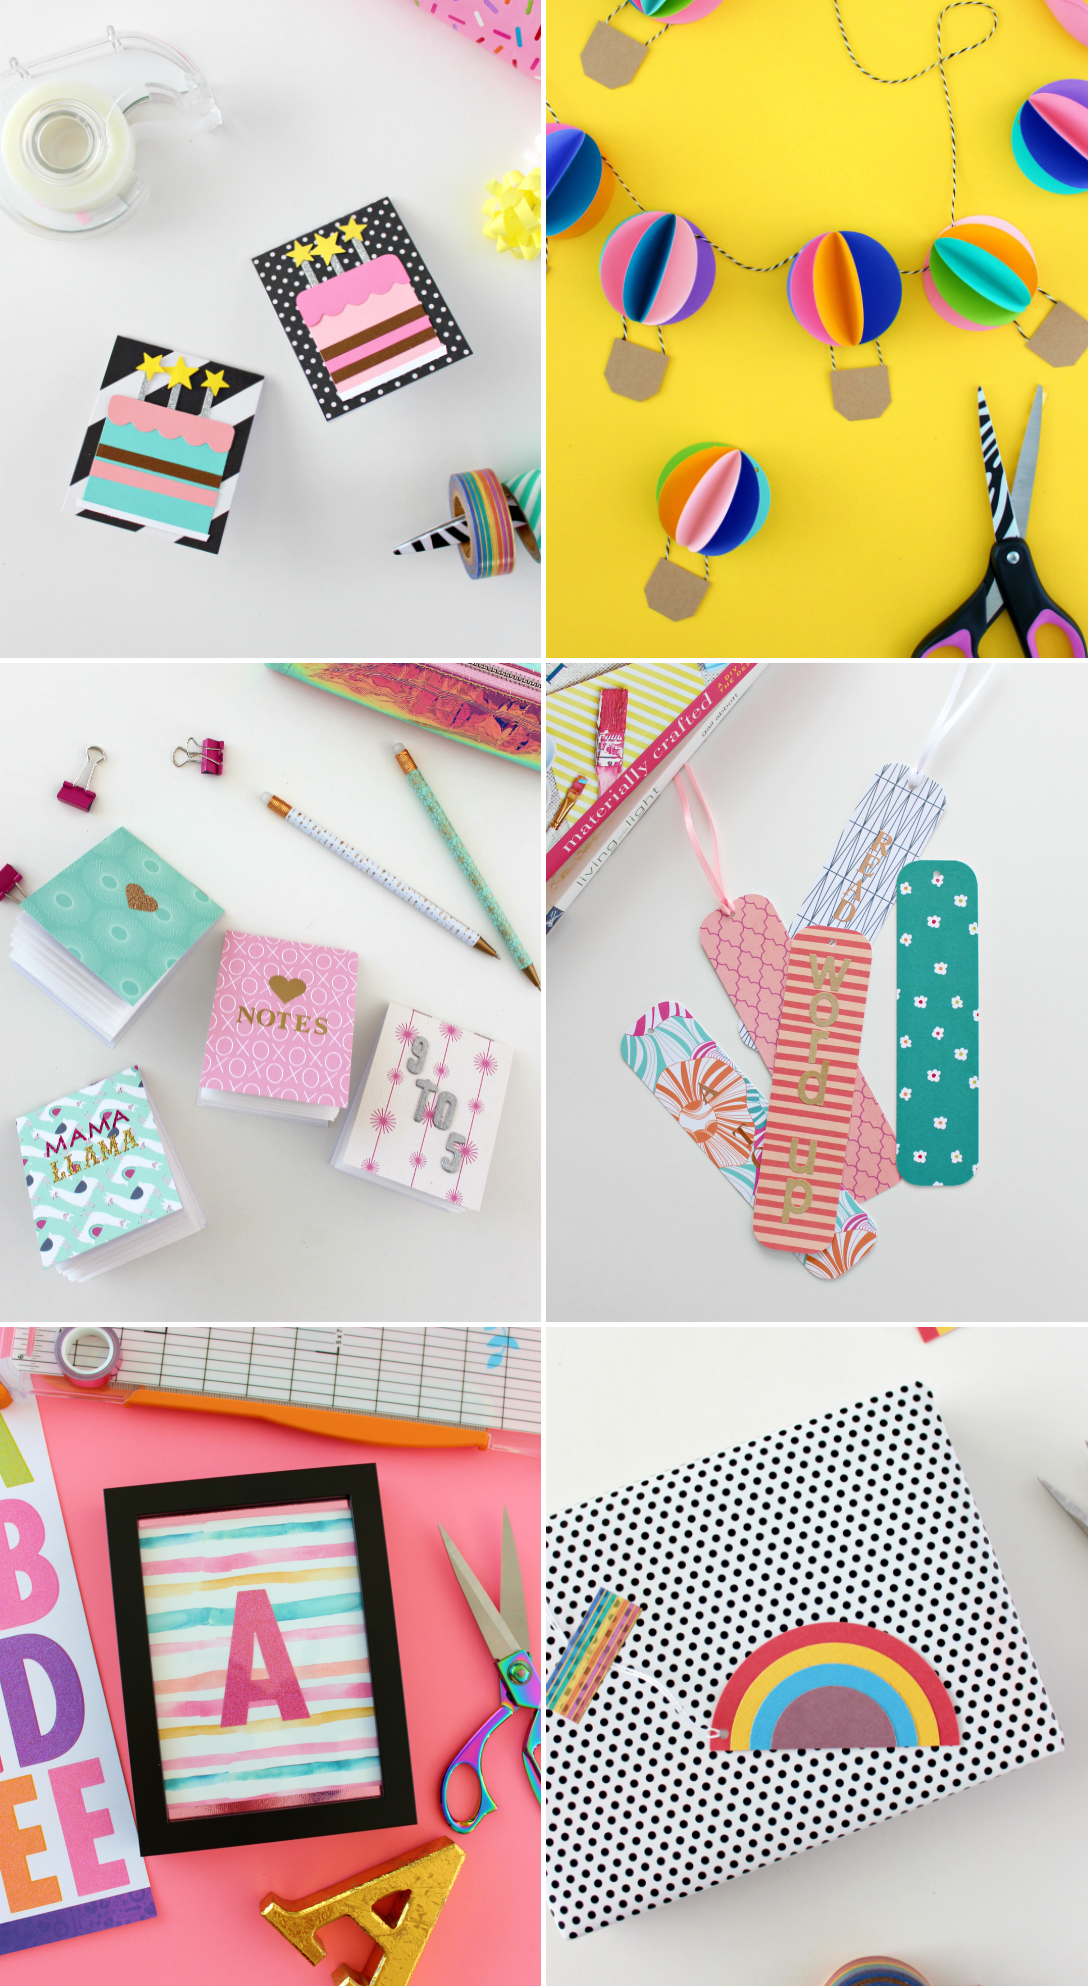 MAY PAPER CRAFT CHALLENGE: YOUR TOP 5 CRAFTS